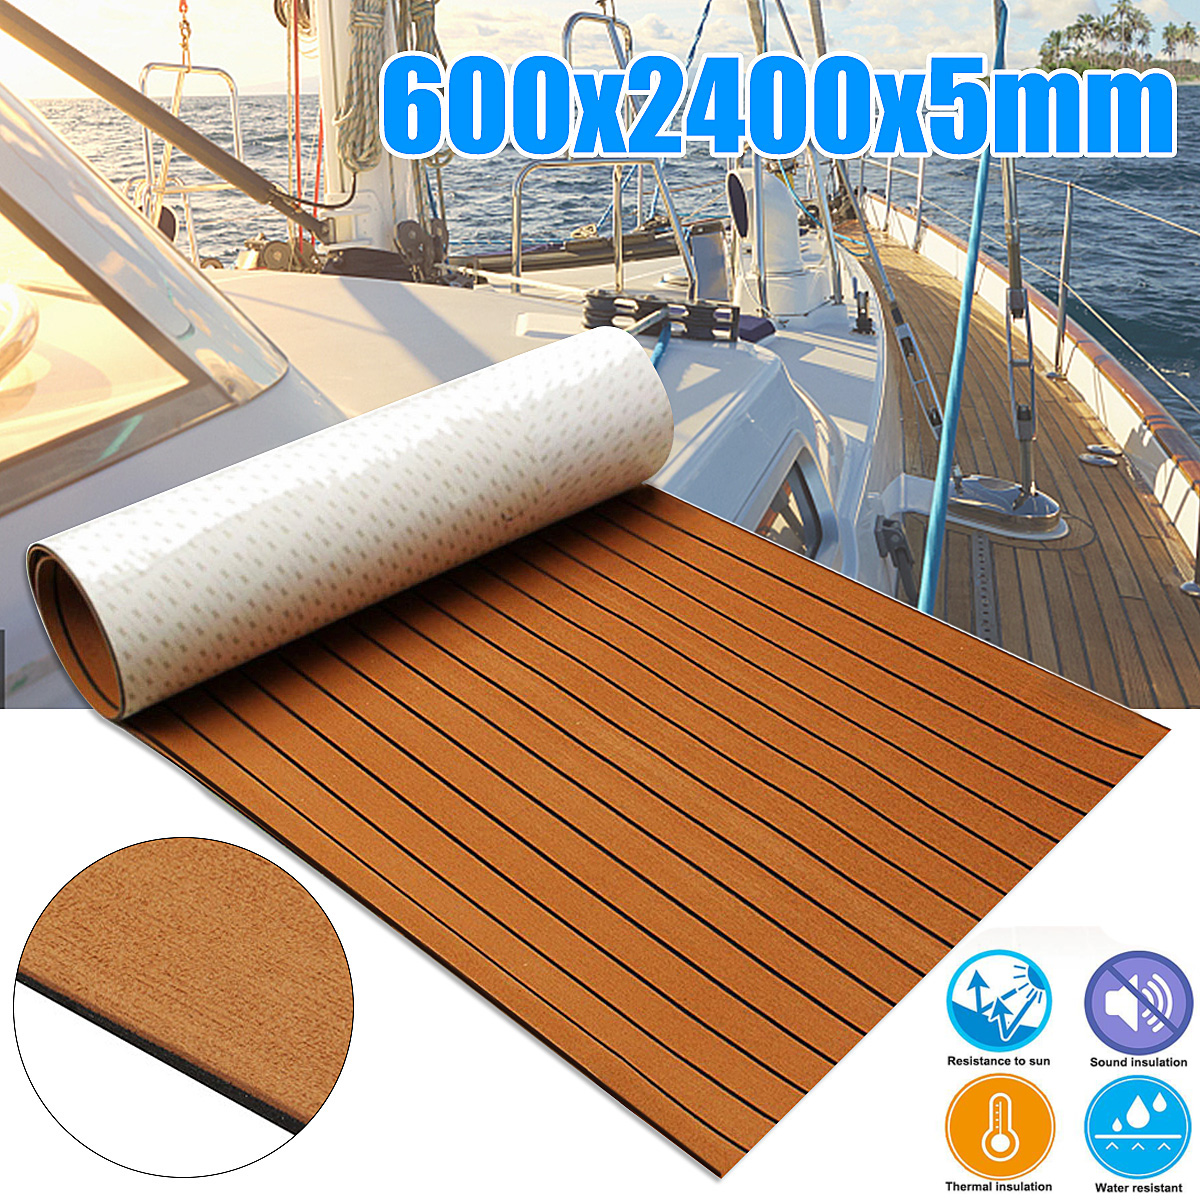 Self-Adhesive 600x2400x5mm Foam Teak Decking EVA Foam Marine Flooring Faux Boat Decking Sheet Accessories Marine Brown Black